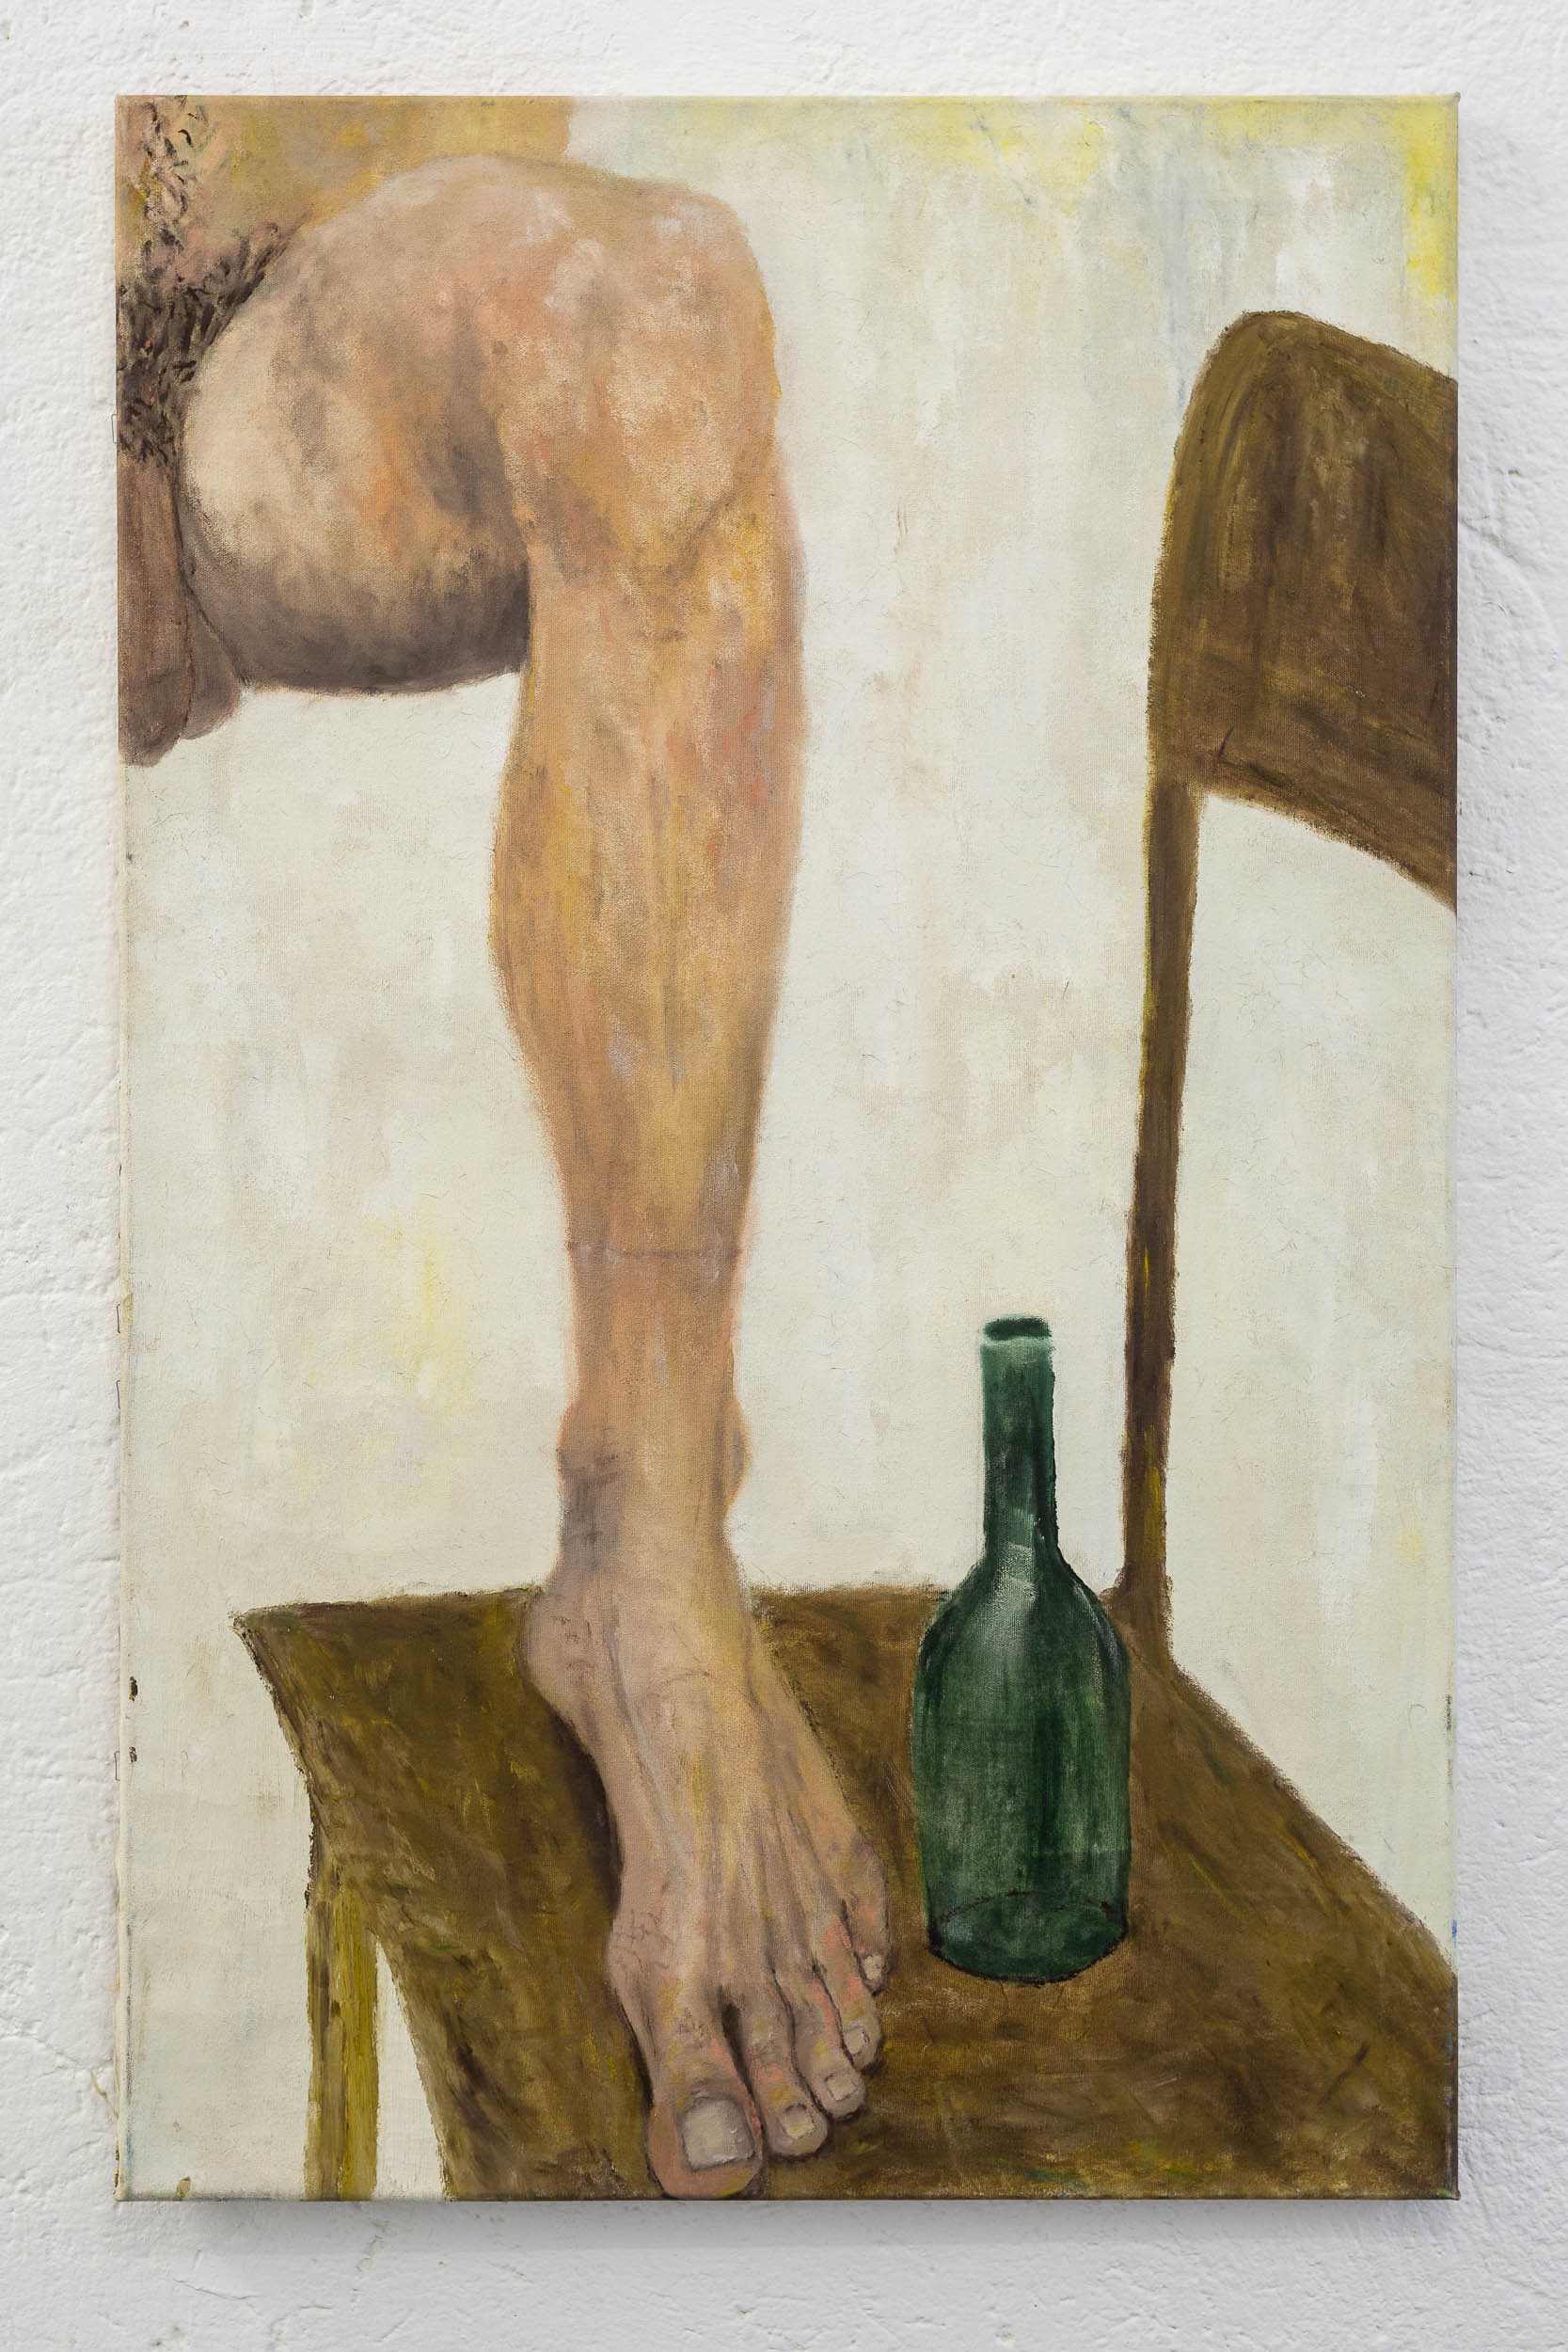 Dieter Hall,  Leg and beer bottle,  1992, Oil on canvas, 1992, 94 x 60 cm  Photo: Kilian Bannwart